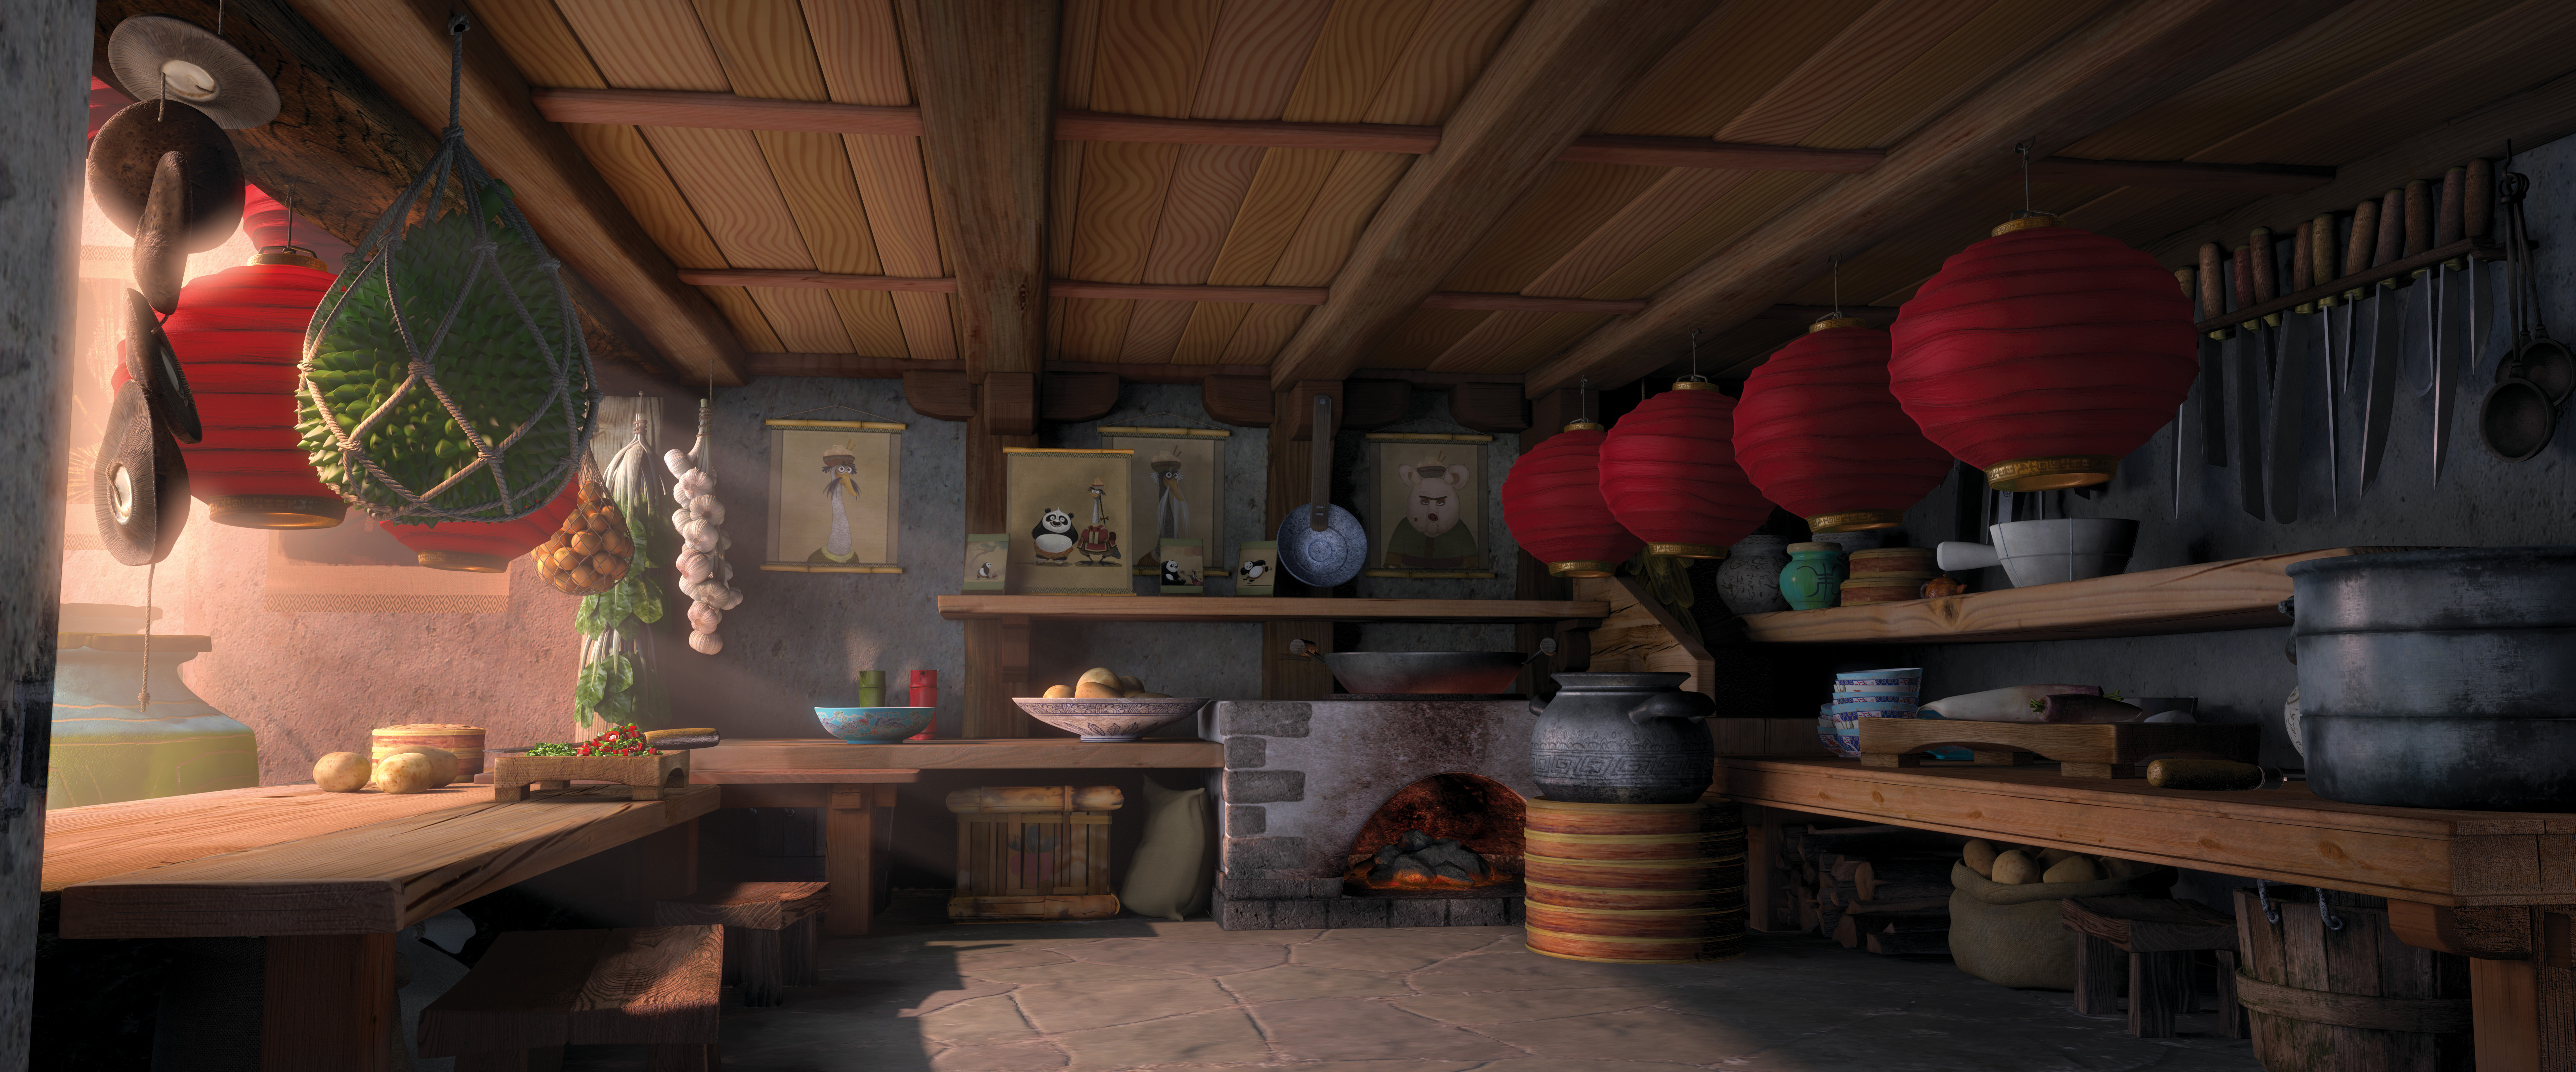 Noodle Shop Kung Fu Panda Wiki The Online Encyclopedia